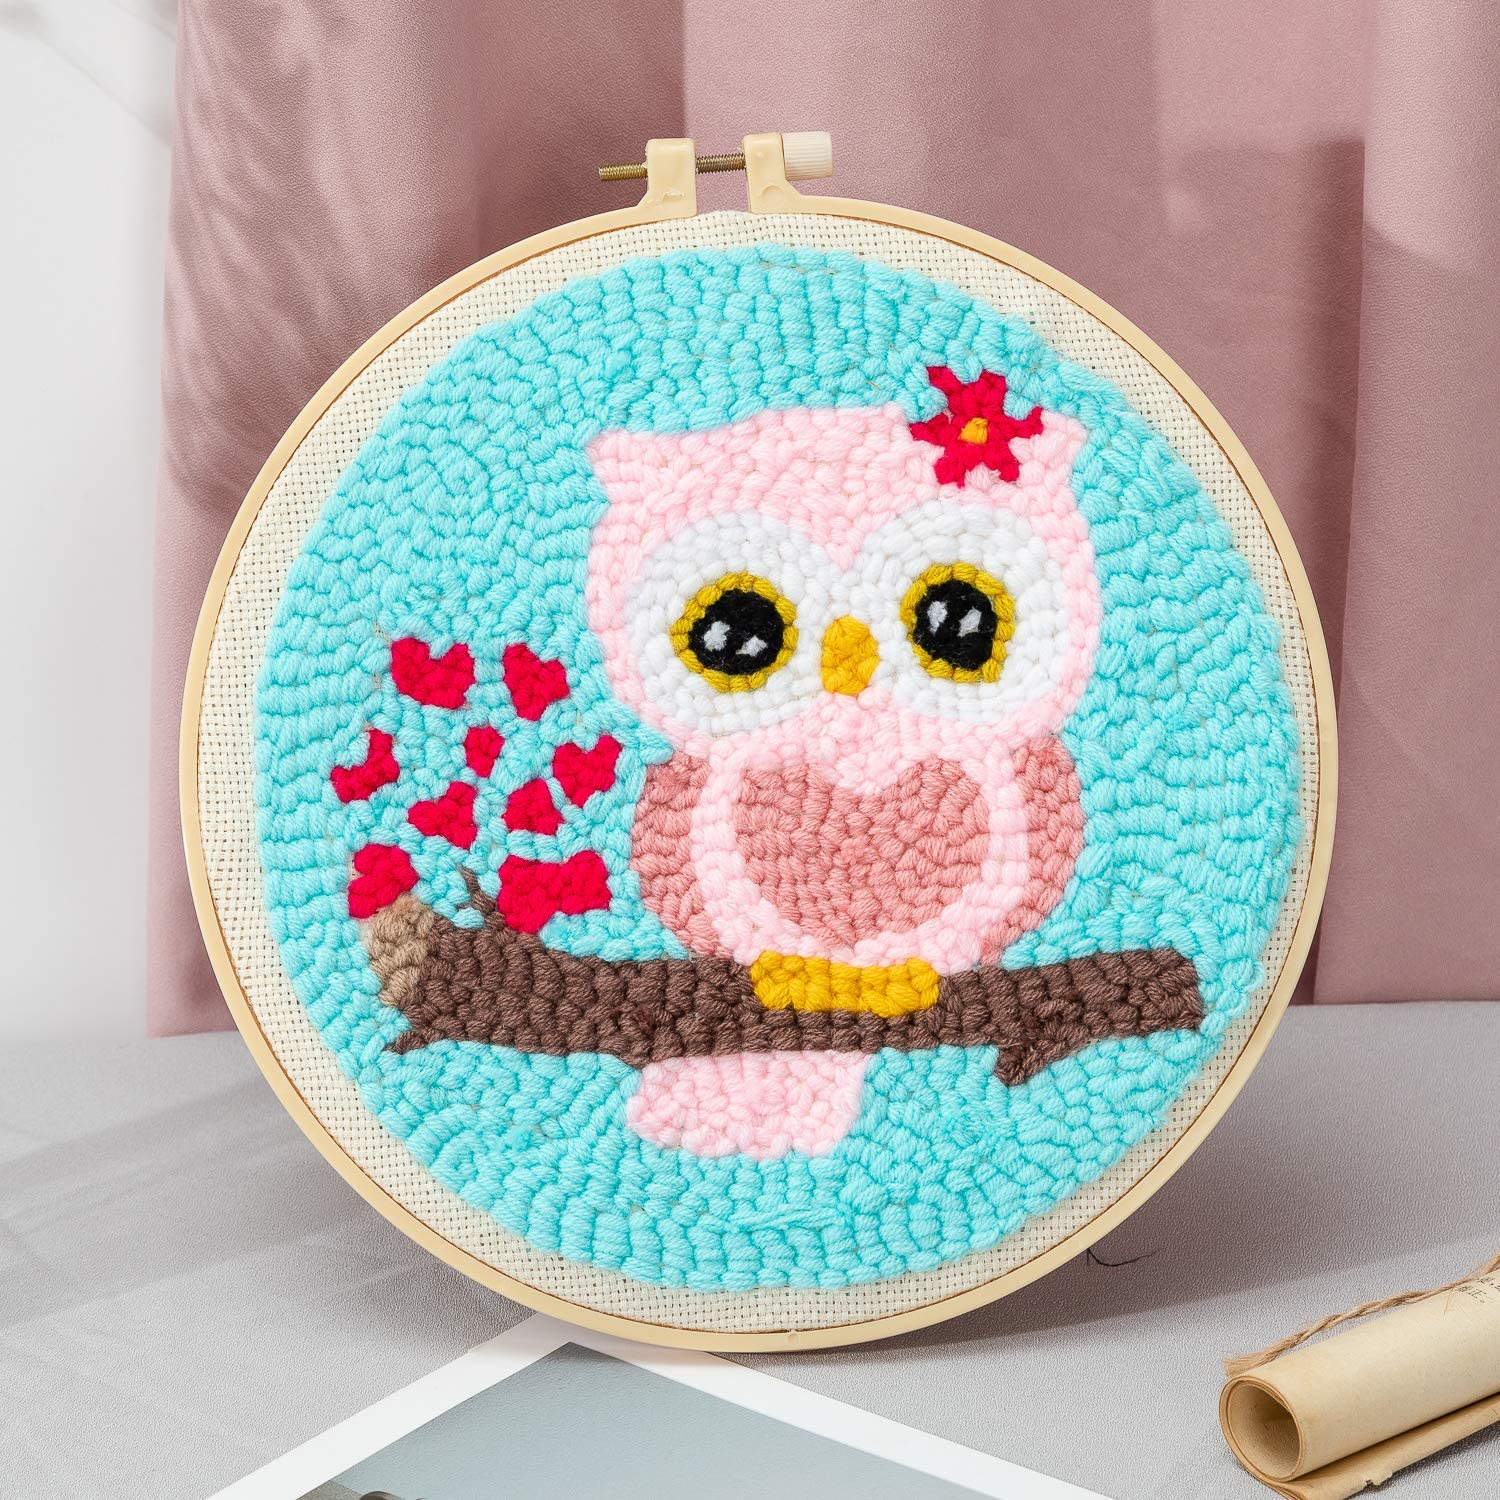 Maydear Punch Needle Starter Kit for Beginner Cartoon Rug Hooking Beginner Kit with an Embroidery Pen and 9.5 Hoop Pink owl